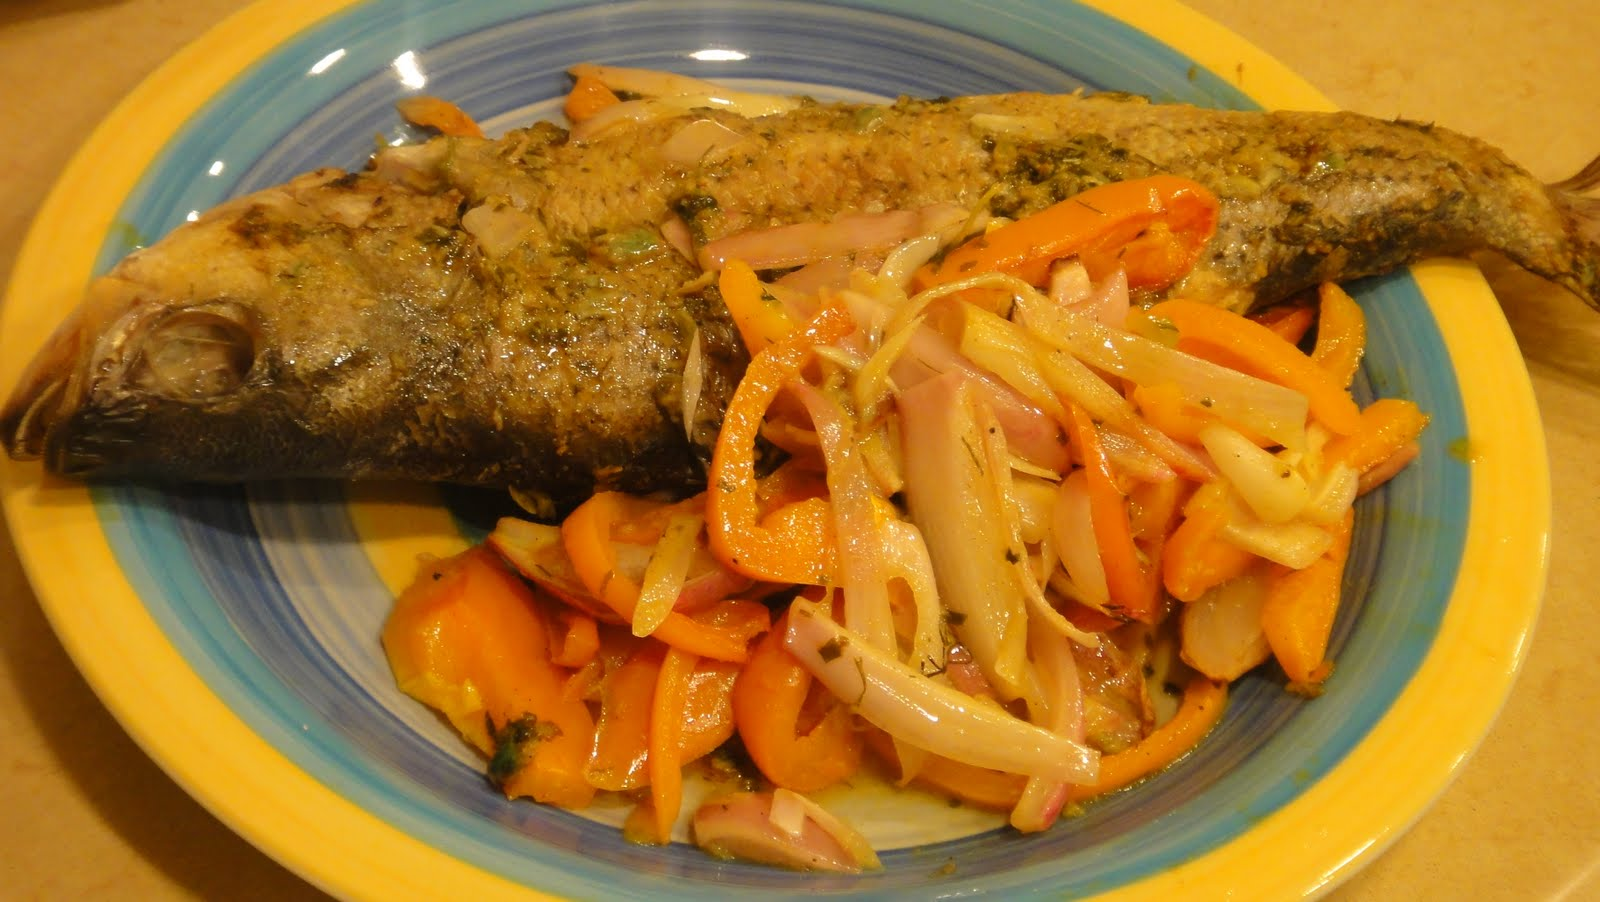 My kitchen talks oven broiled masala fish for Broil fish in oven